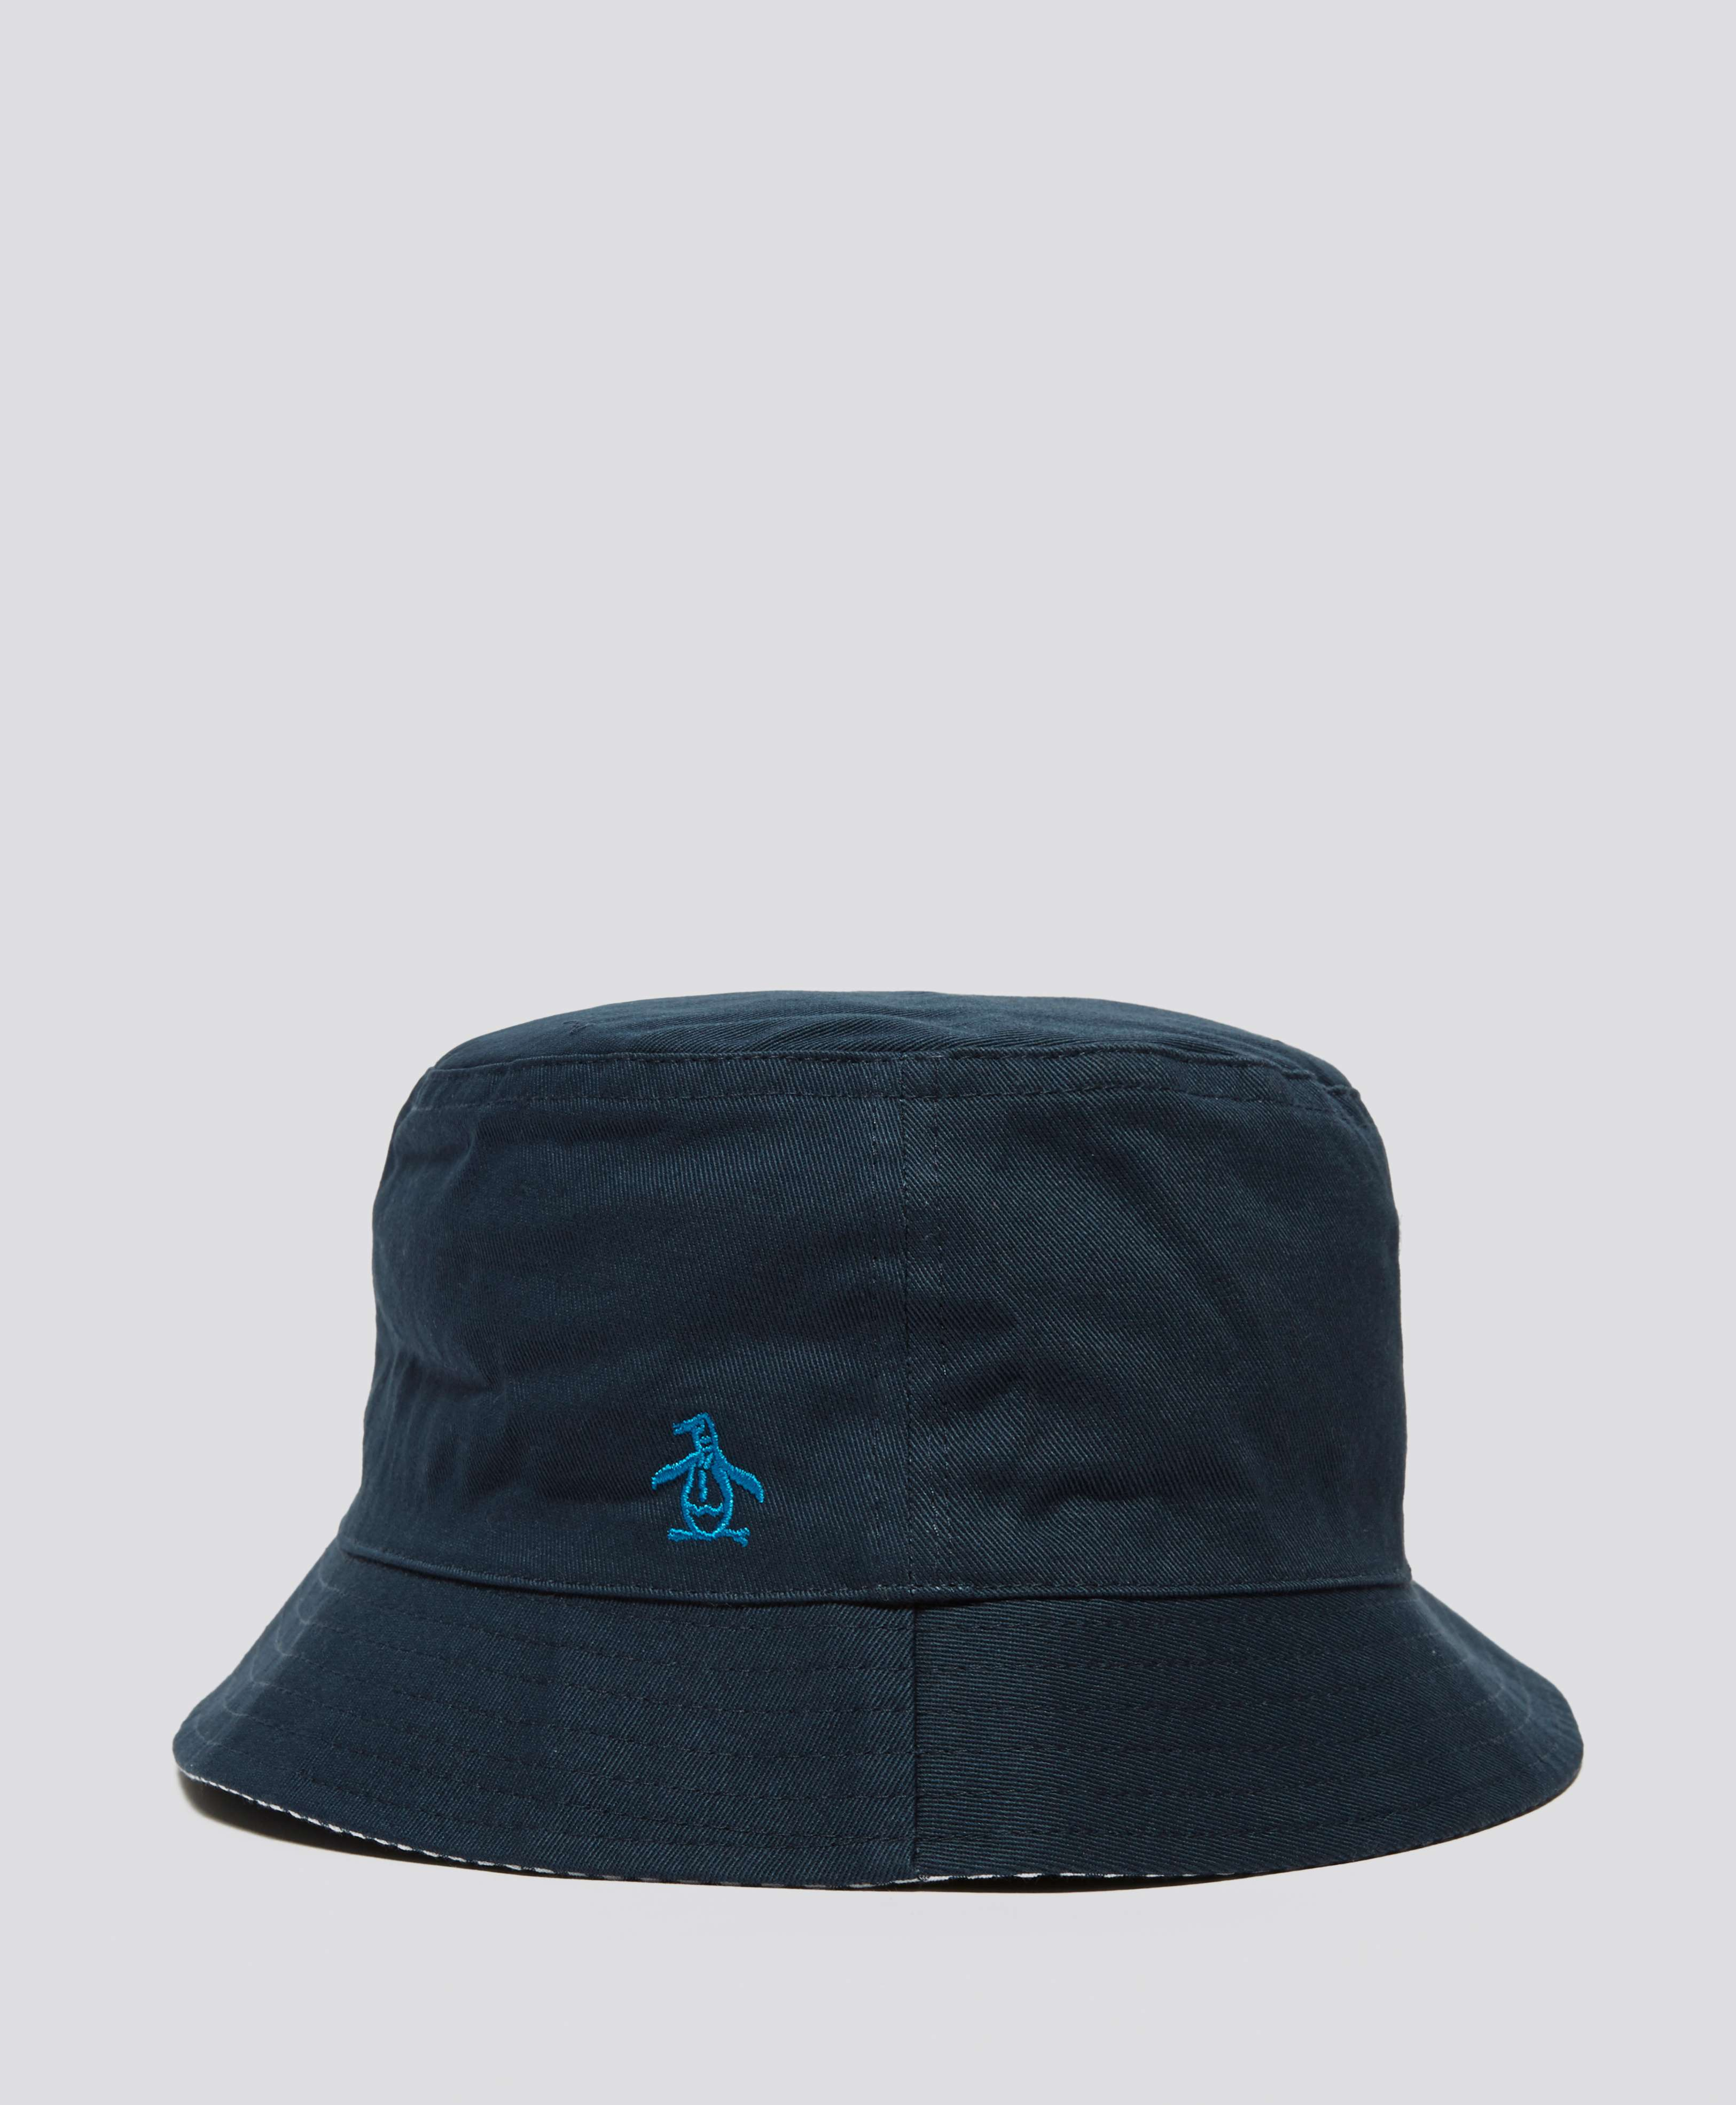 Original Penguin Reversible Bucket Hat  5b18dd010b6